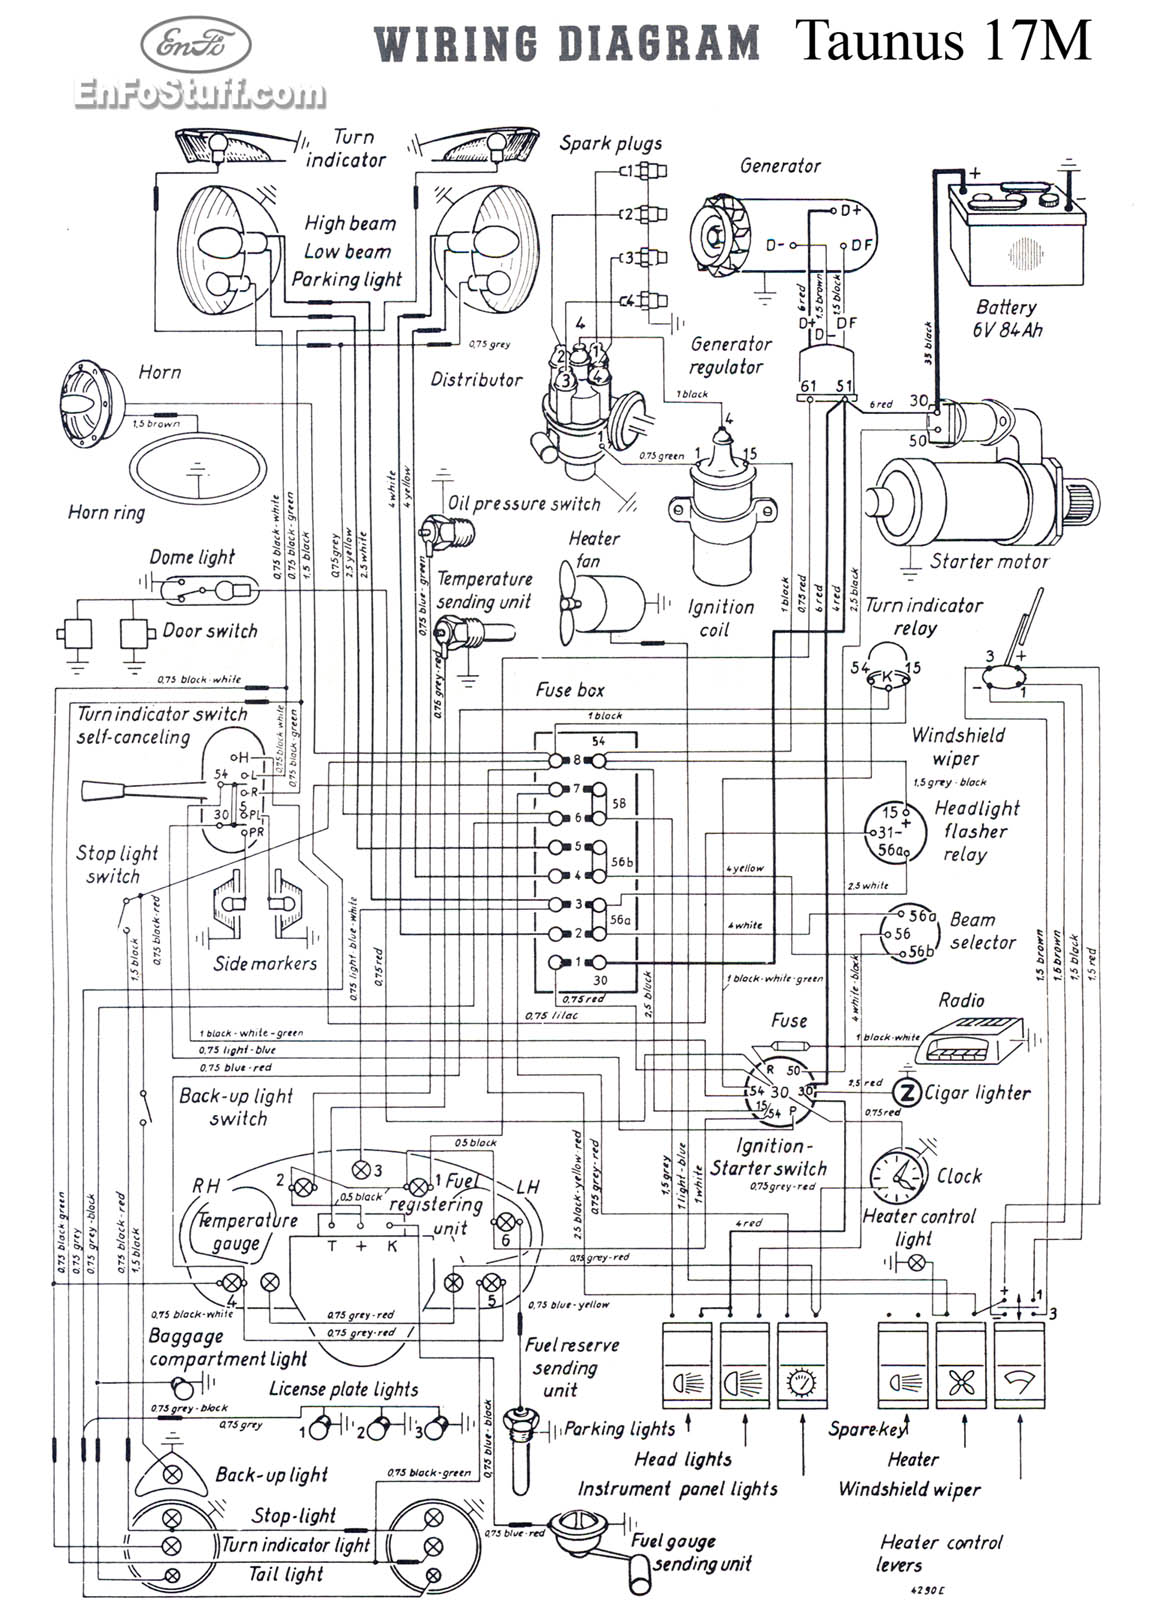 1974 Super Beetle Wiring Diagram – Annavernon